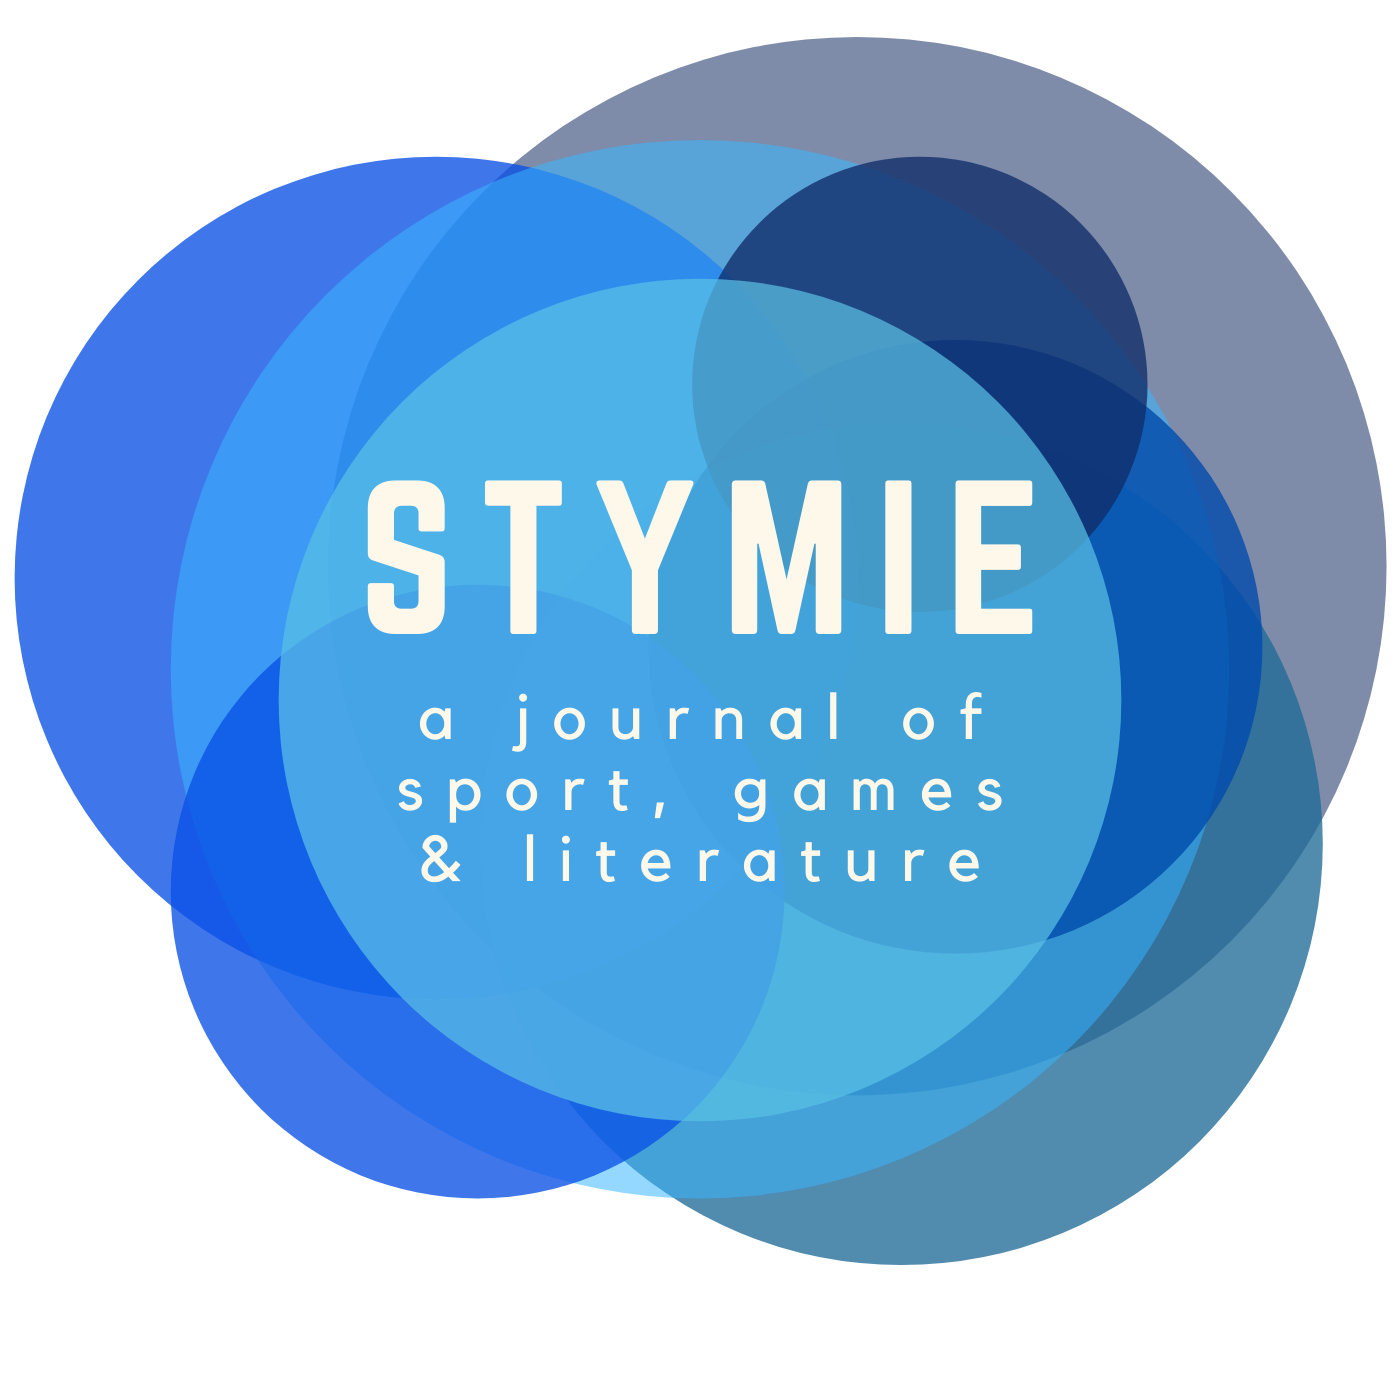 stymie: a journal of sport, games & literature